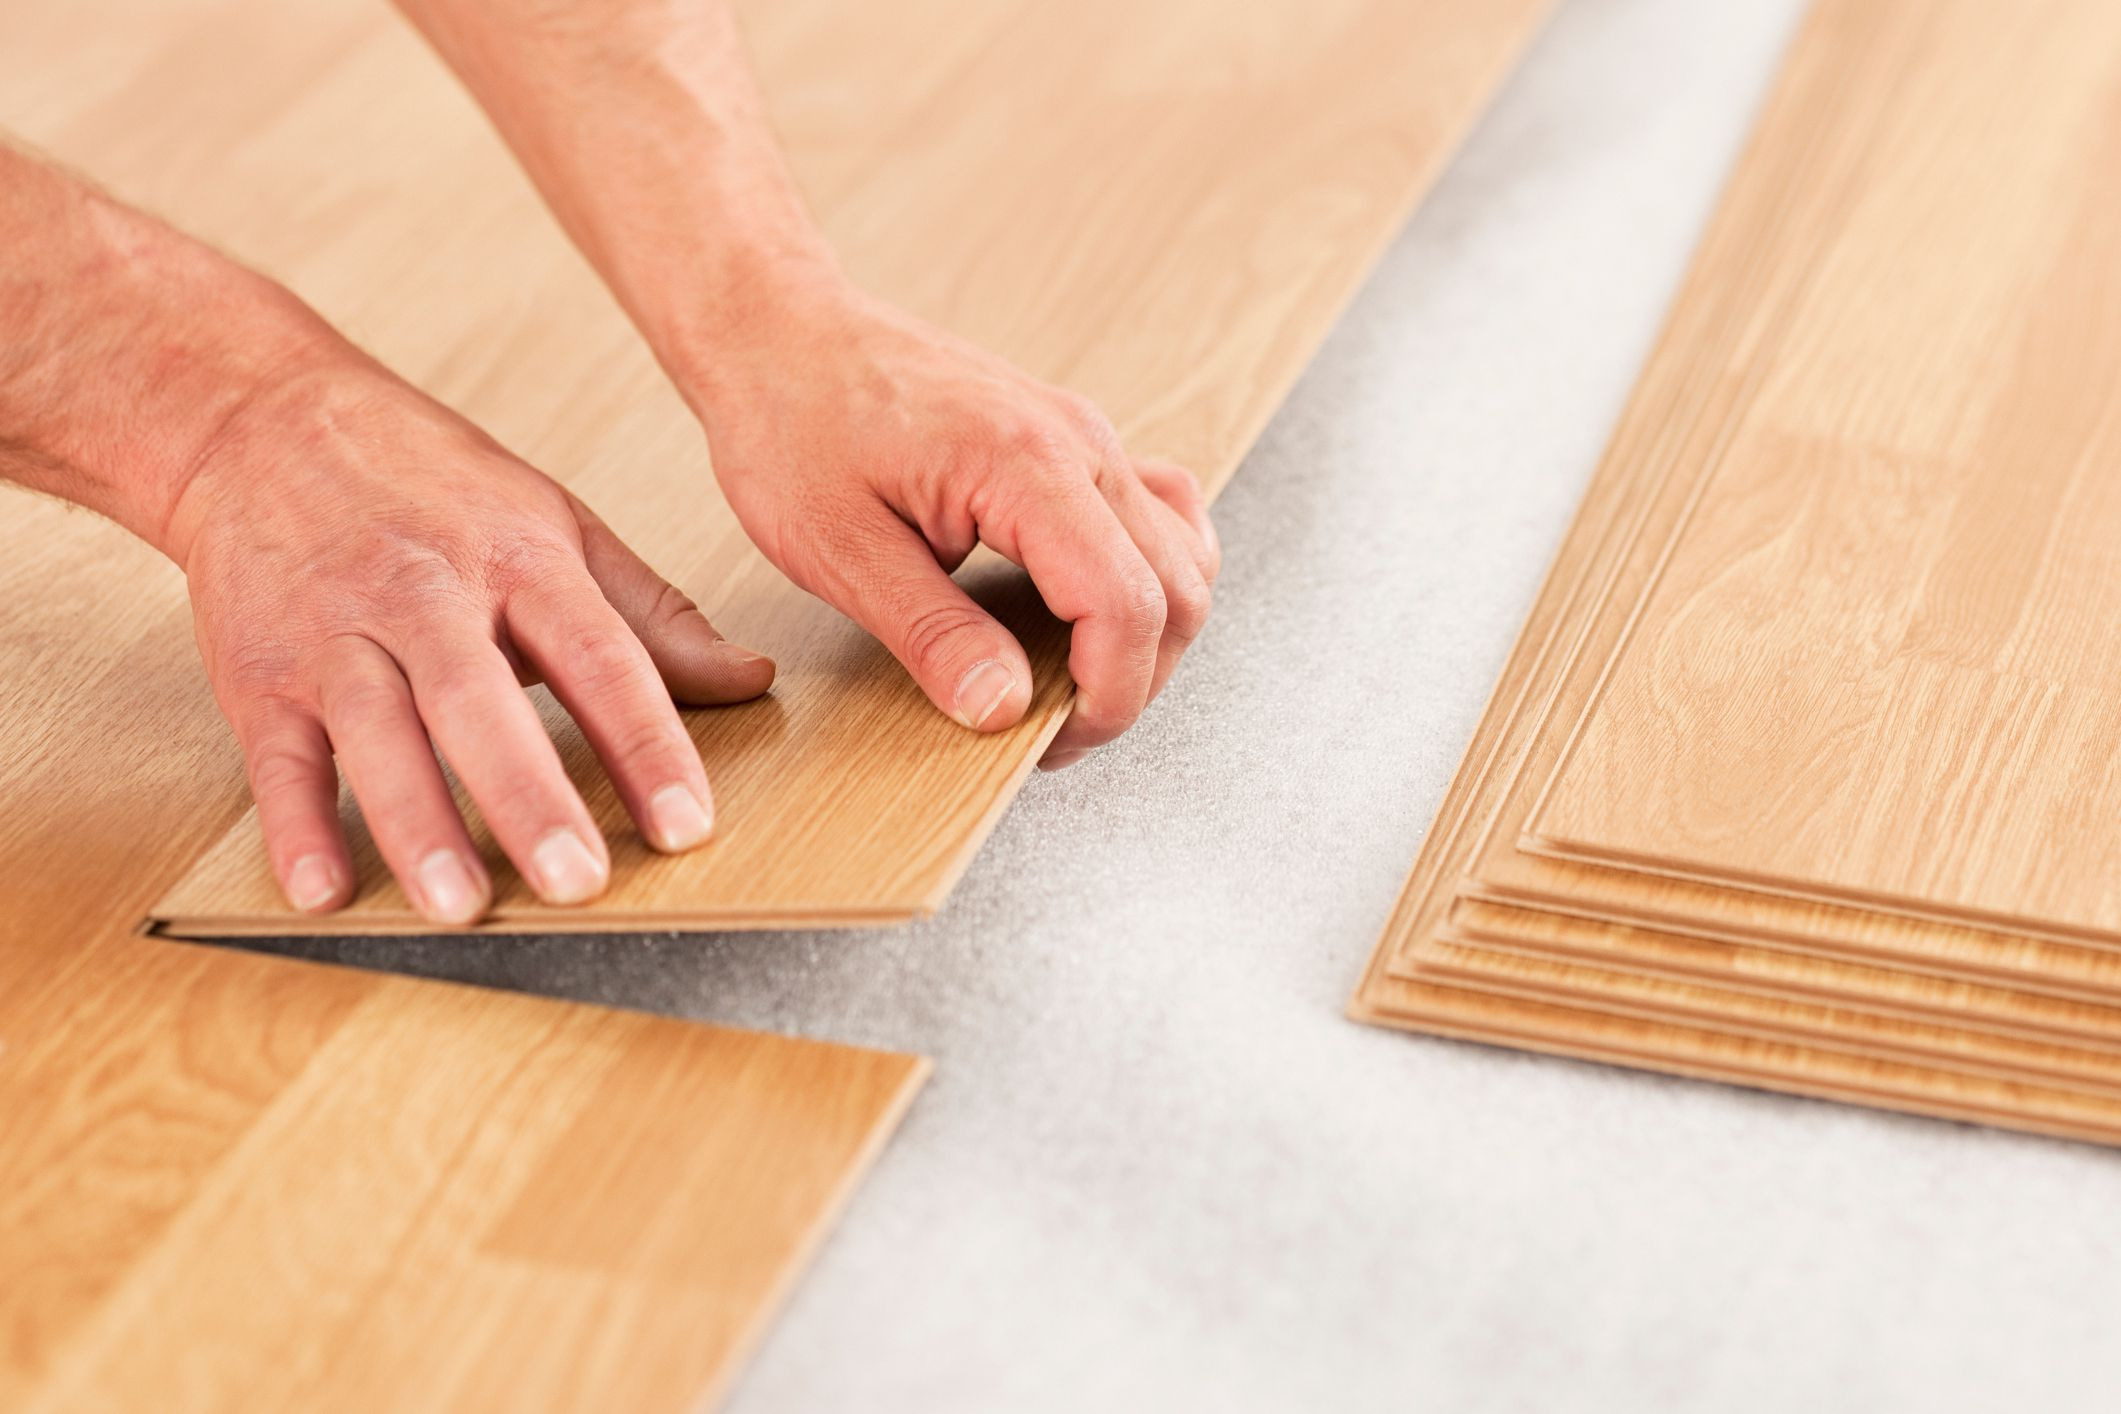 how much do engineered hardwood floors cost of laminate underlayment pros and cons within laminate floor install gettyimages 154961561 588816495f9b58bdb3da1a02